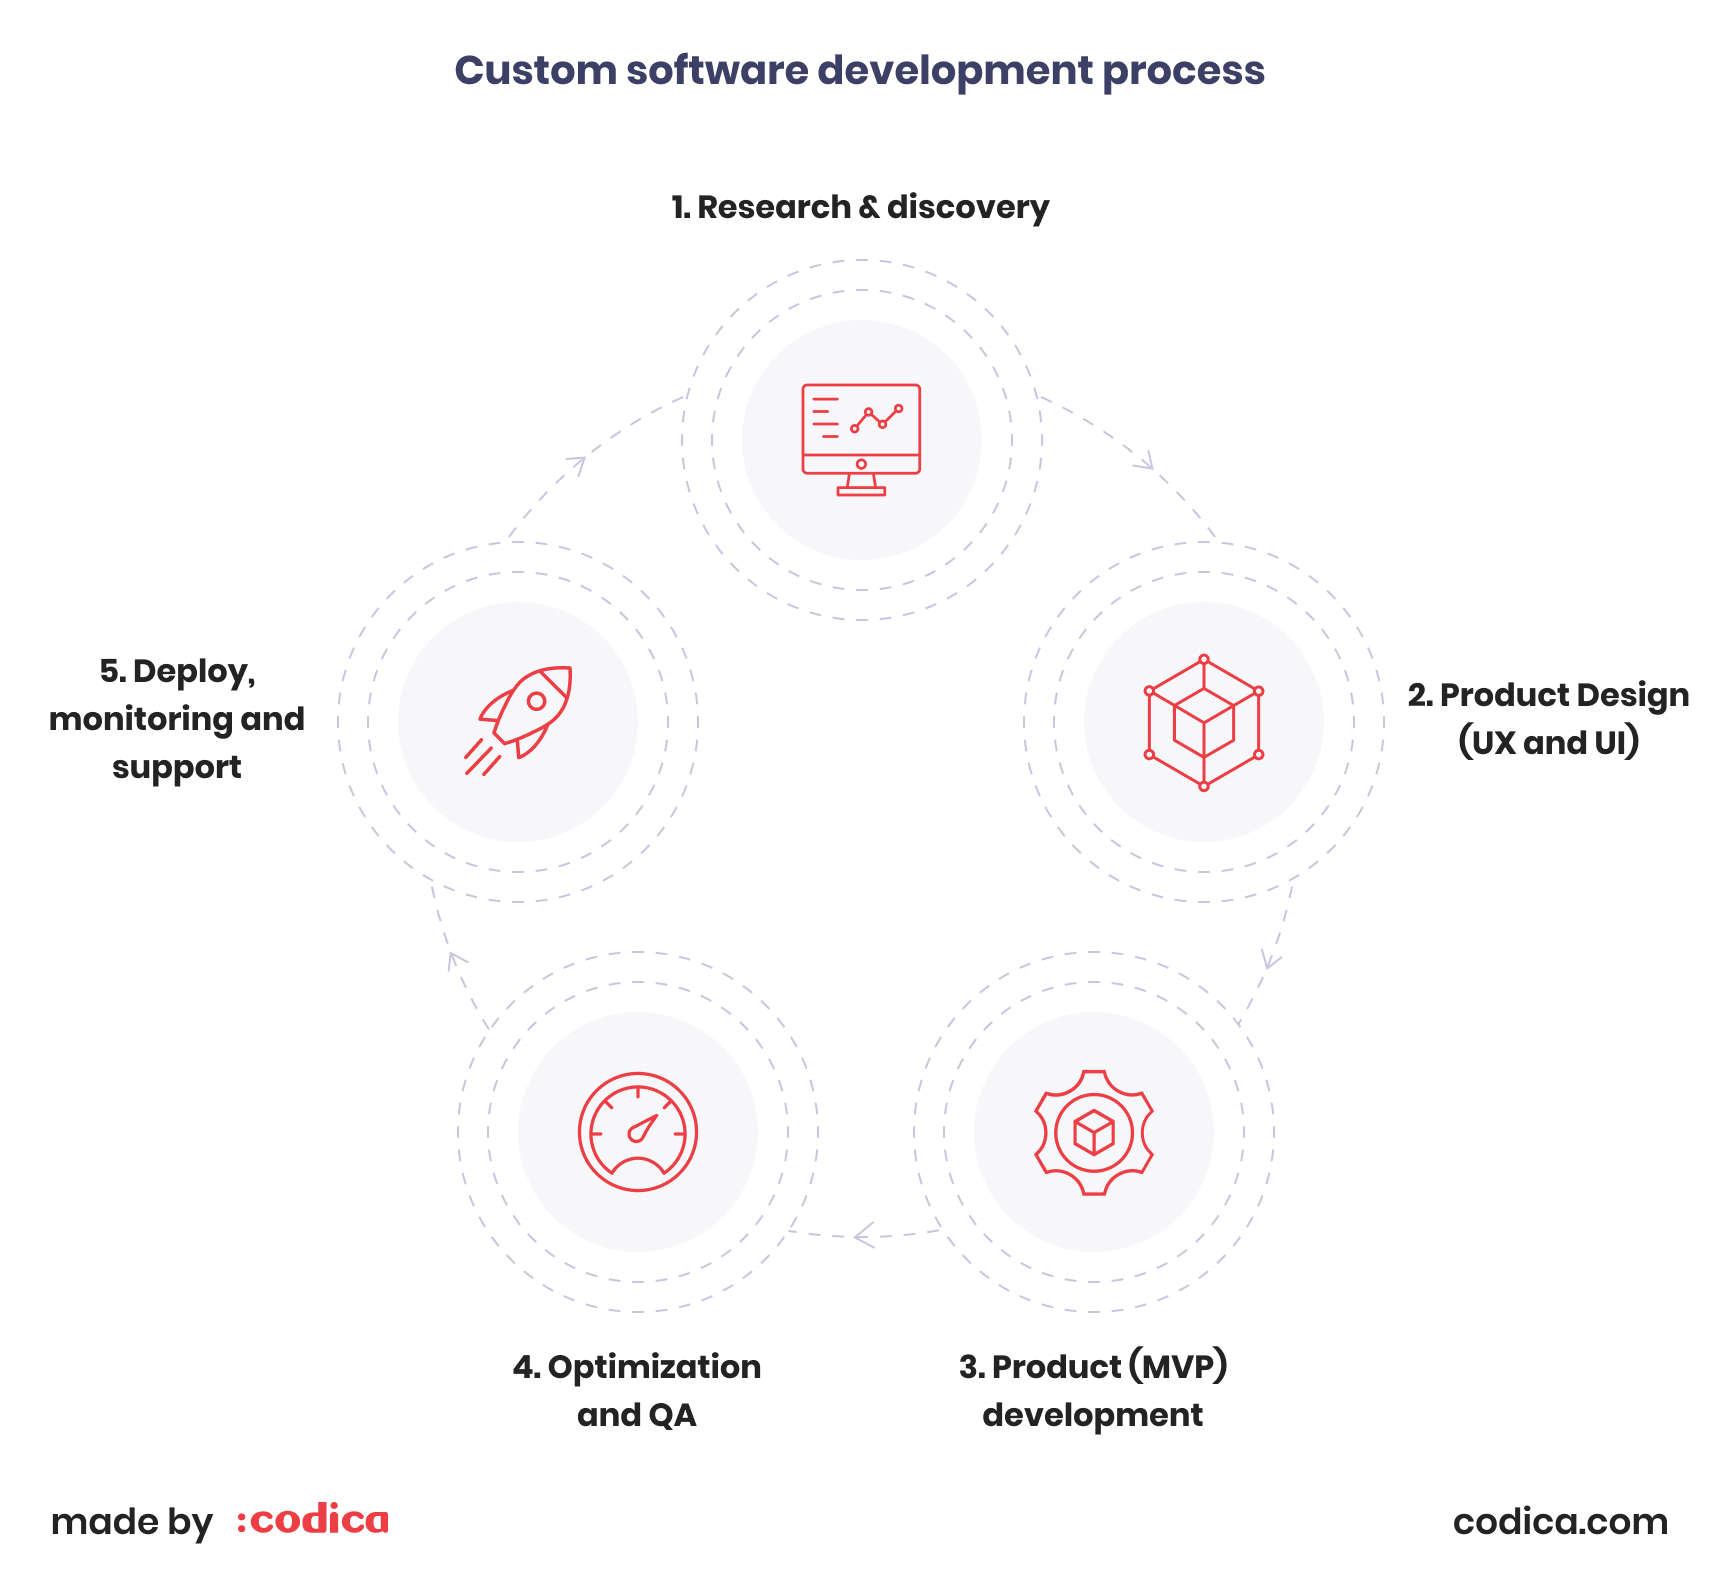 Custom software development process